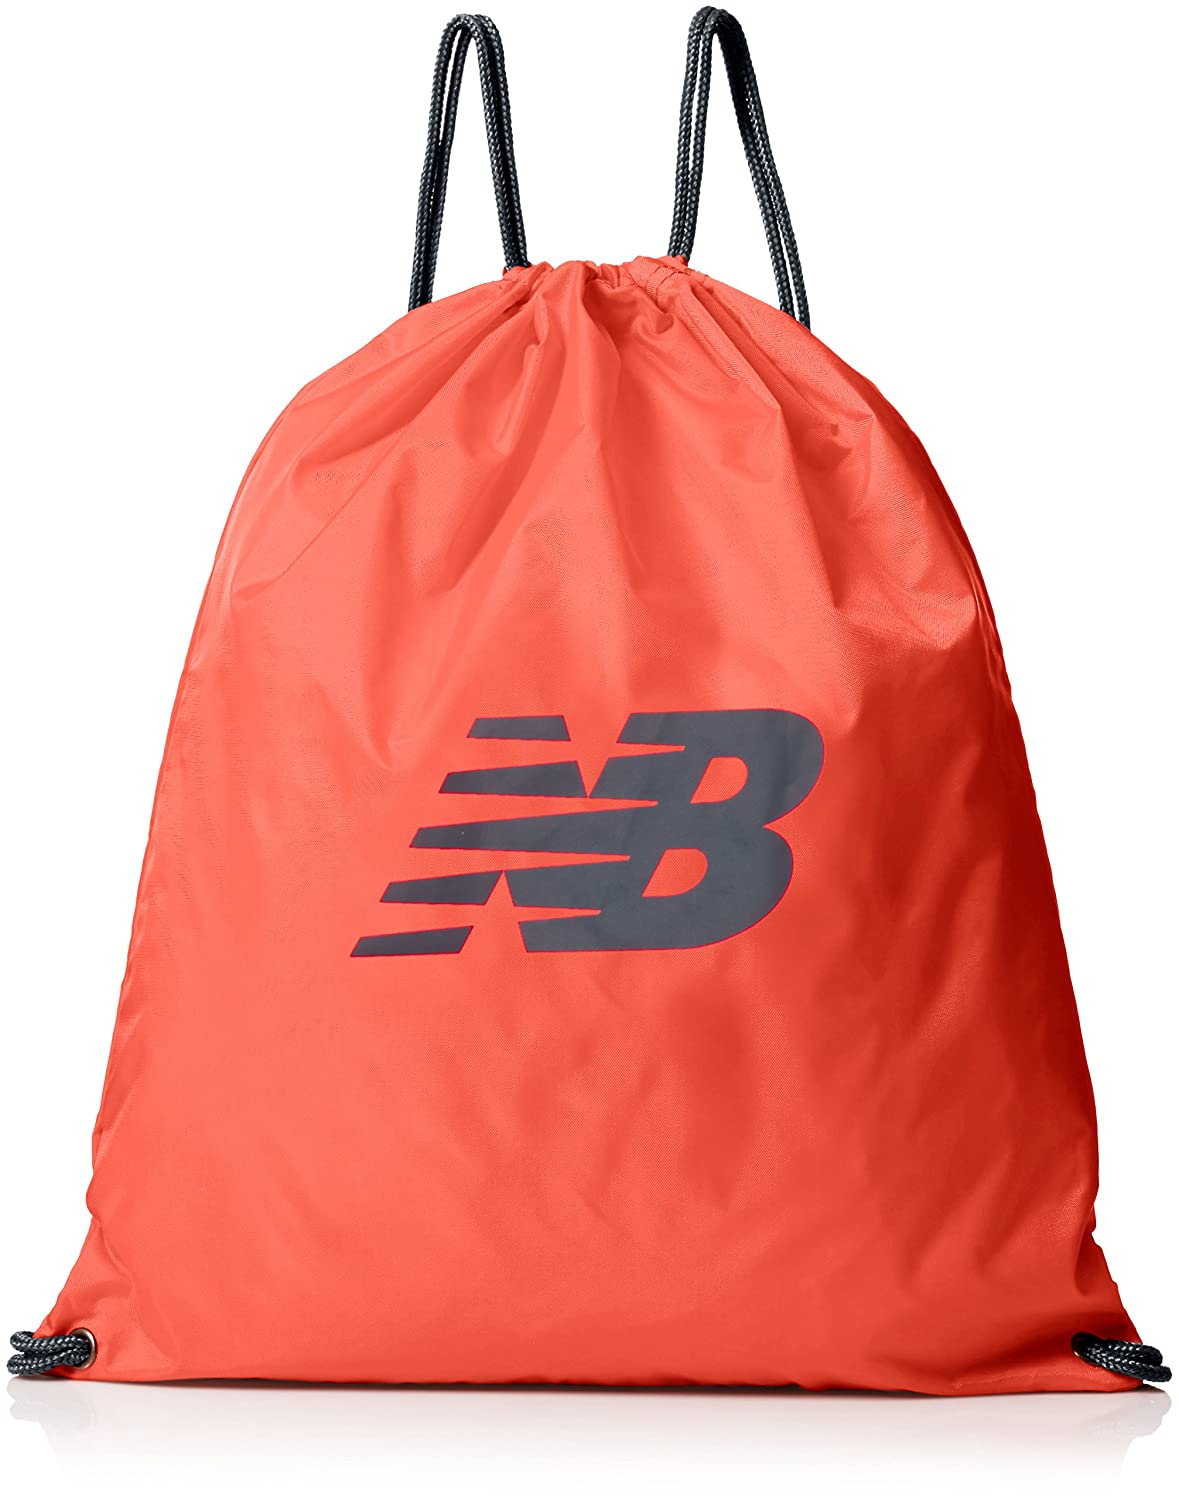 New Balance Adult Gymsack Black One Size 500006